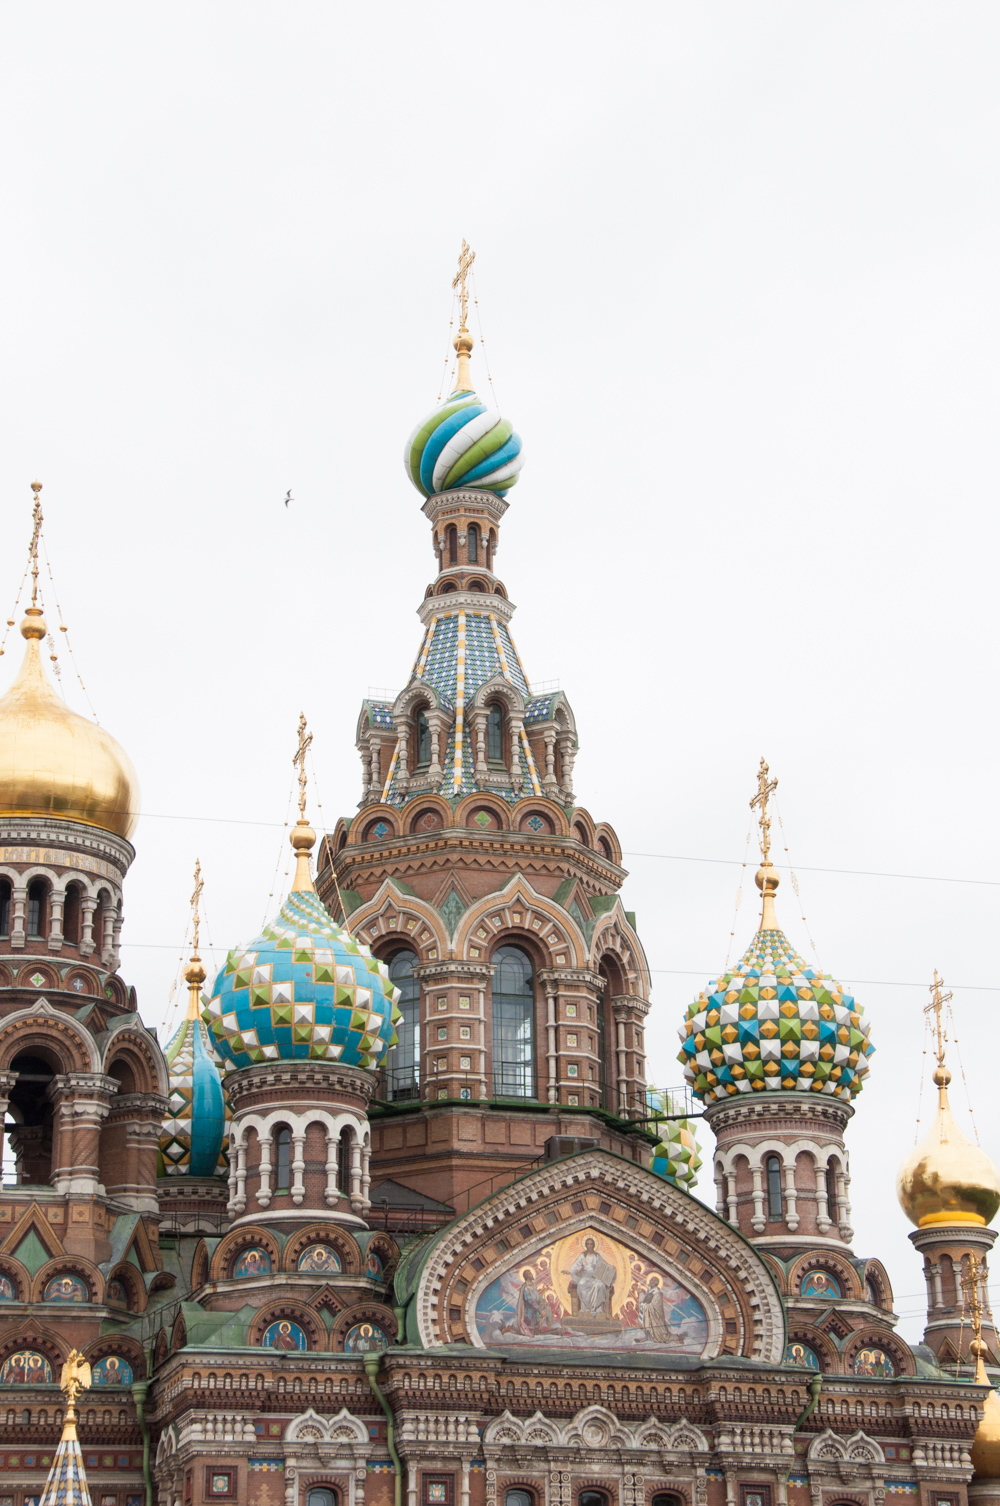 Church of the Savior on Spilled Blood in Saint Petersburg, Russia